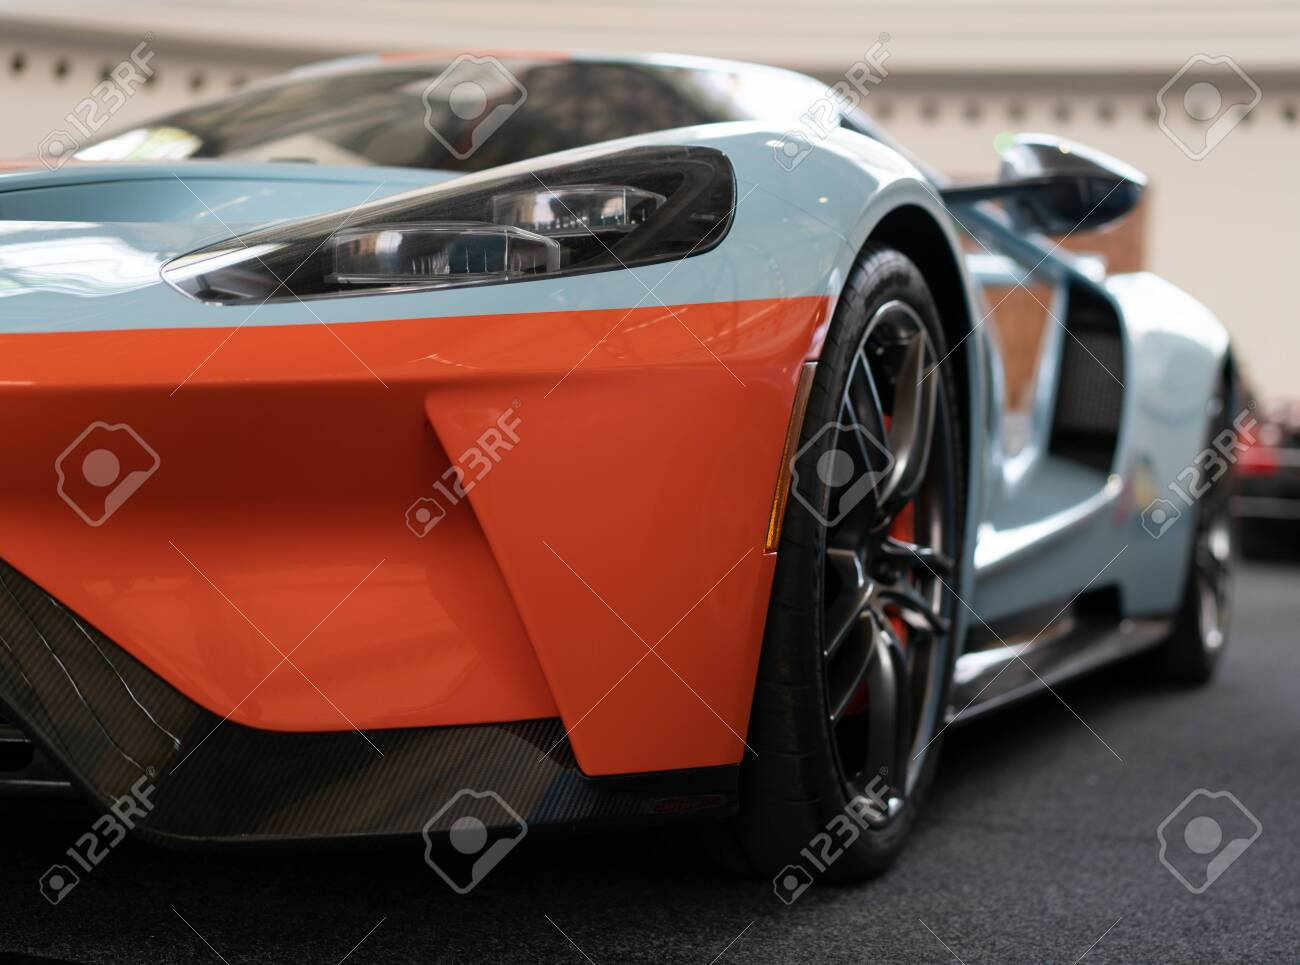 Prague Czech Republic 16 5 2019 Ford Gt 40 At Car Show Stock Photo Picture And Royalty Free Image Image 136919848